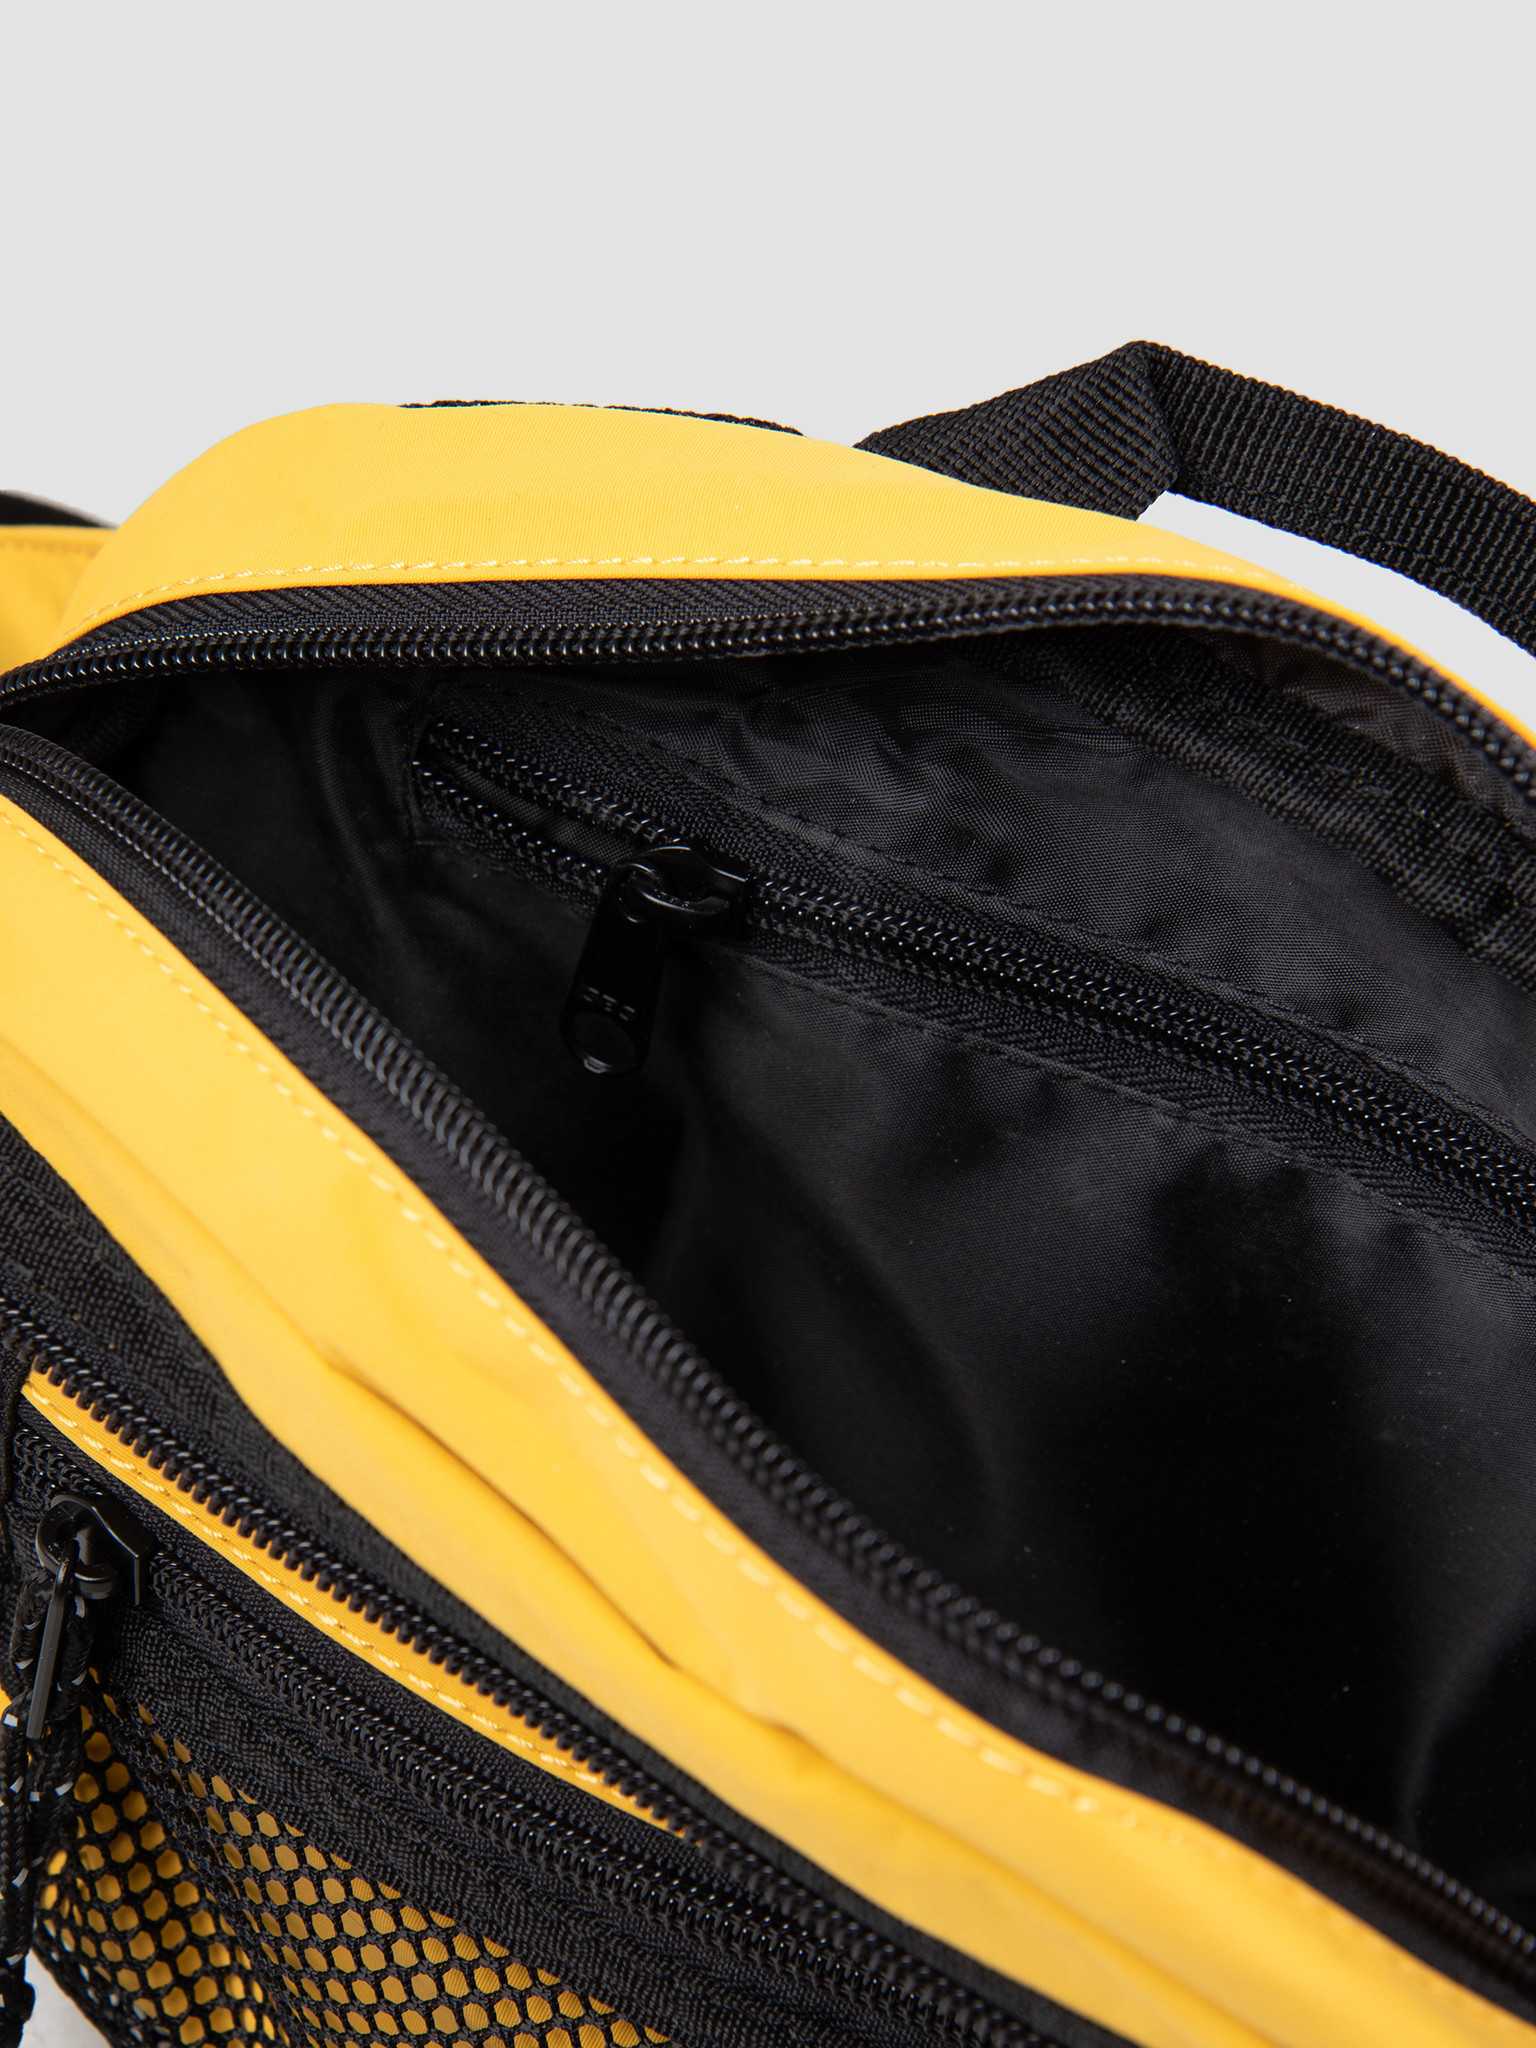 Obey Obey Conditions Waist Bag YEL 100010108